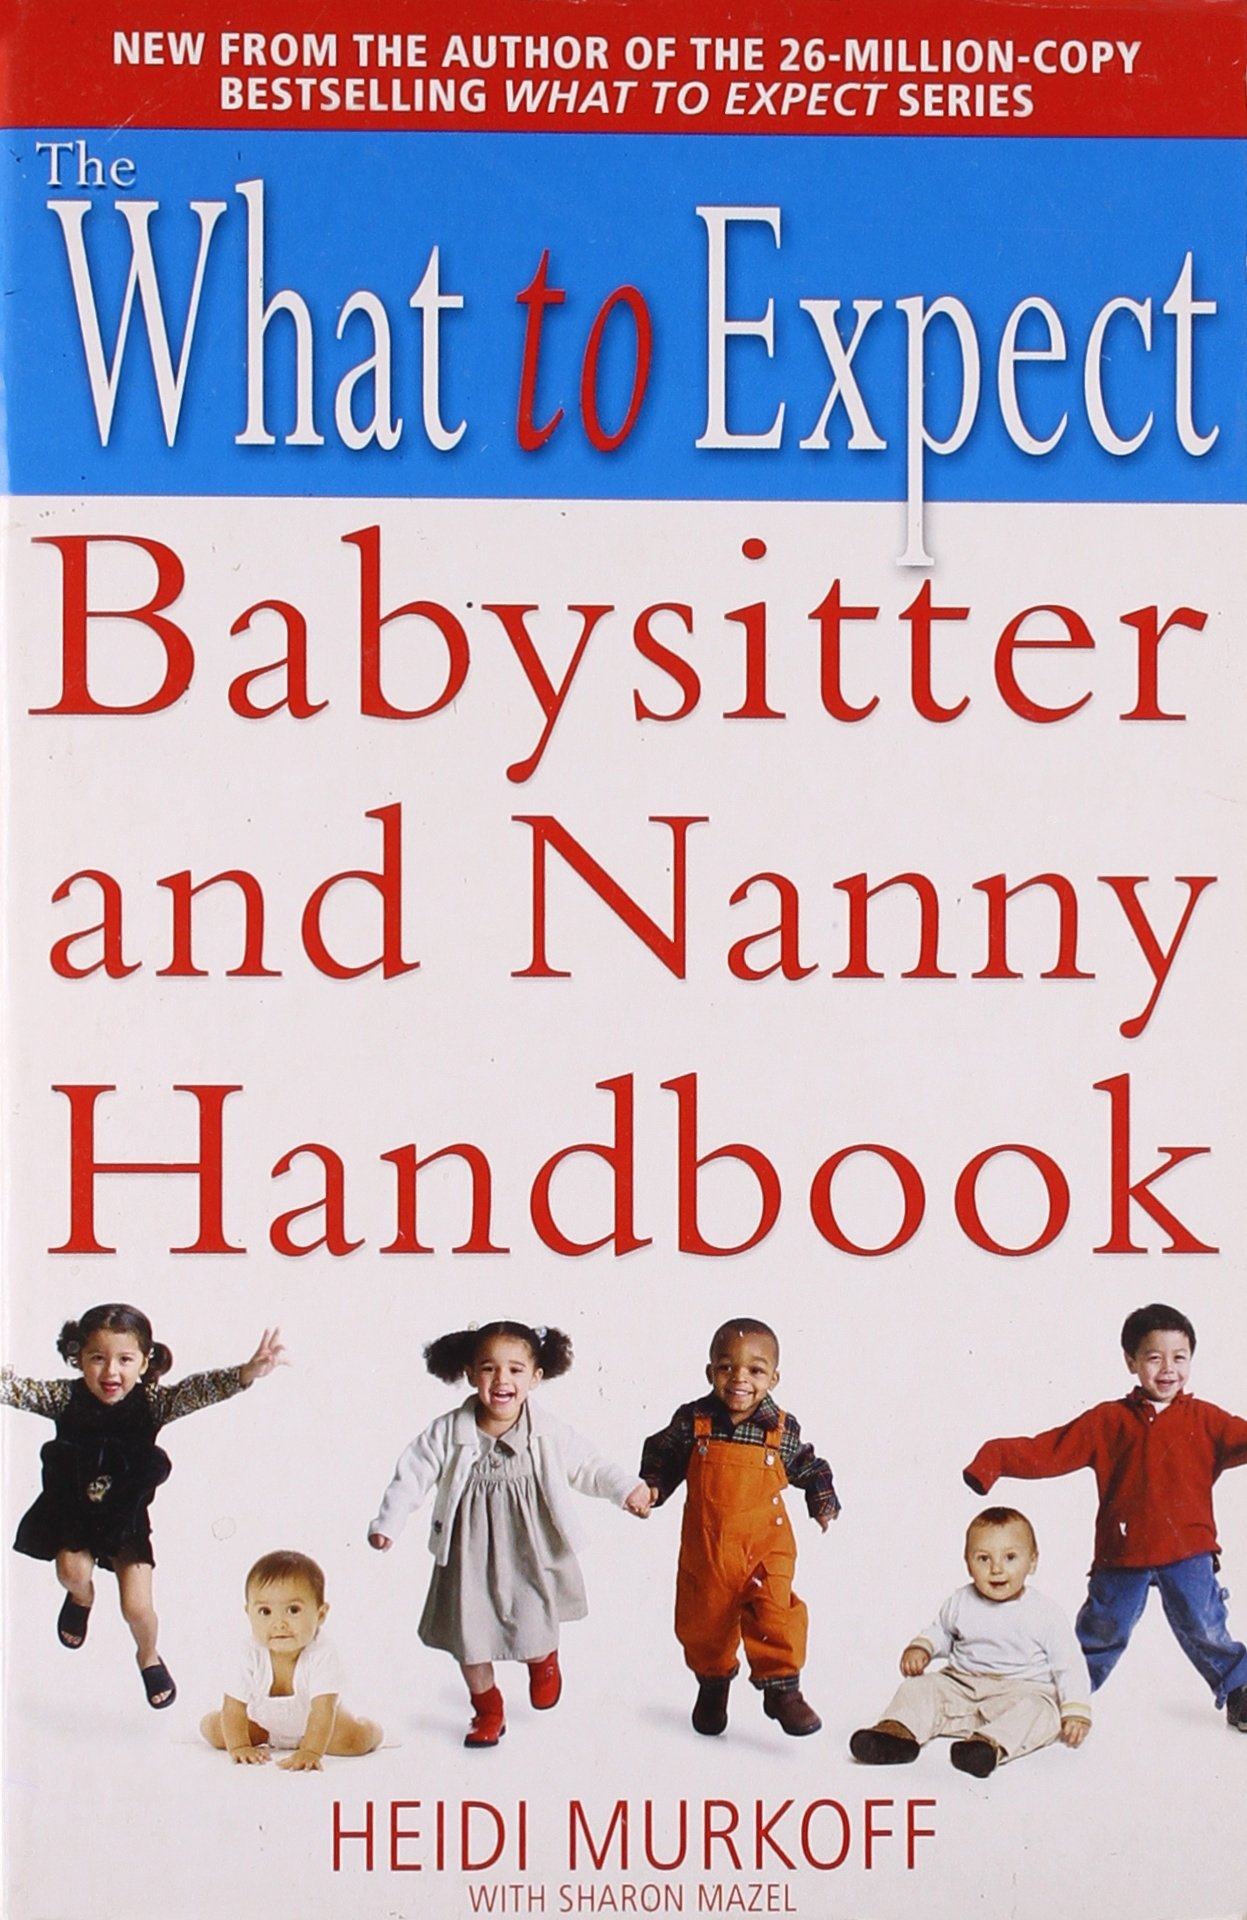 the what to expect babysitter and nanny handbook heidi e murkoff the what to expect babysitter and nanny handbook heidi e murkoff 9781416502111 amazon com books